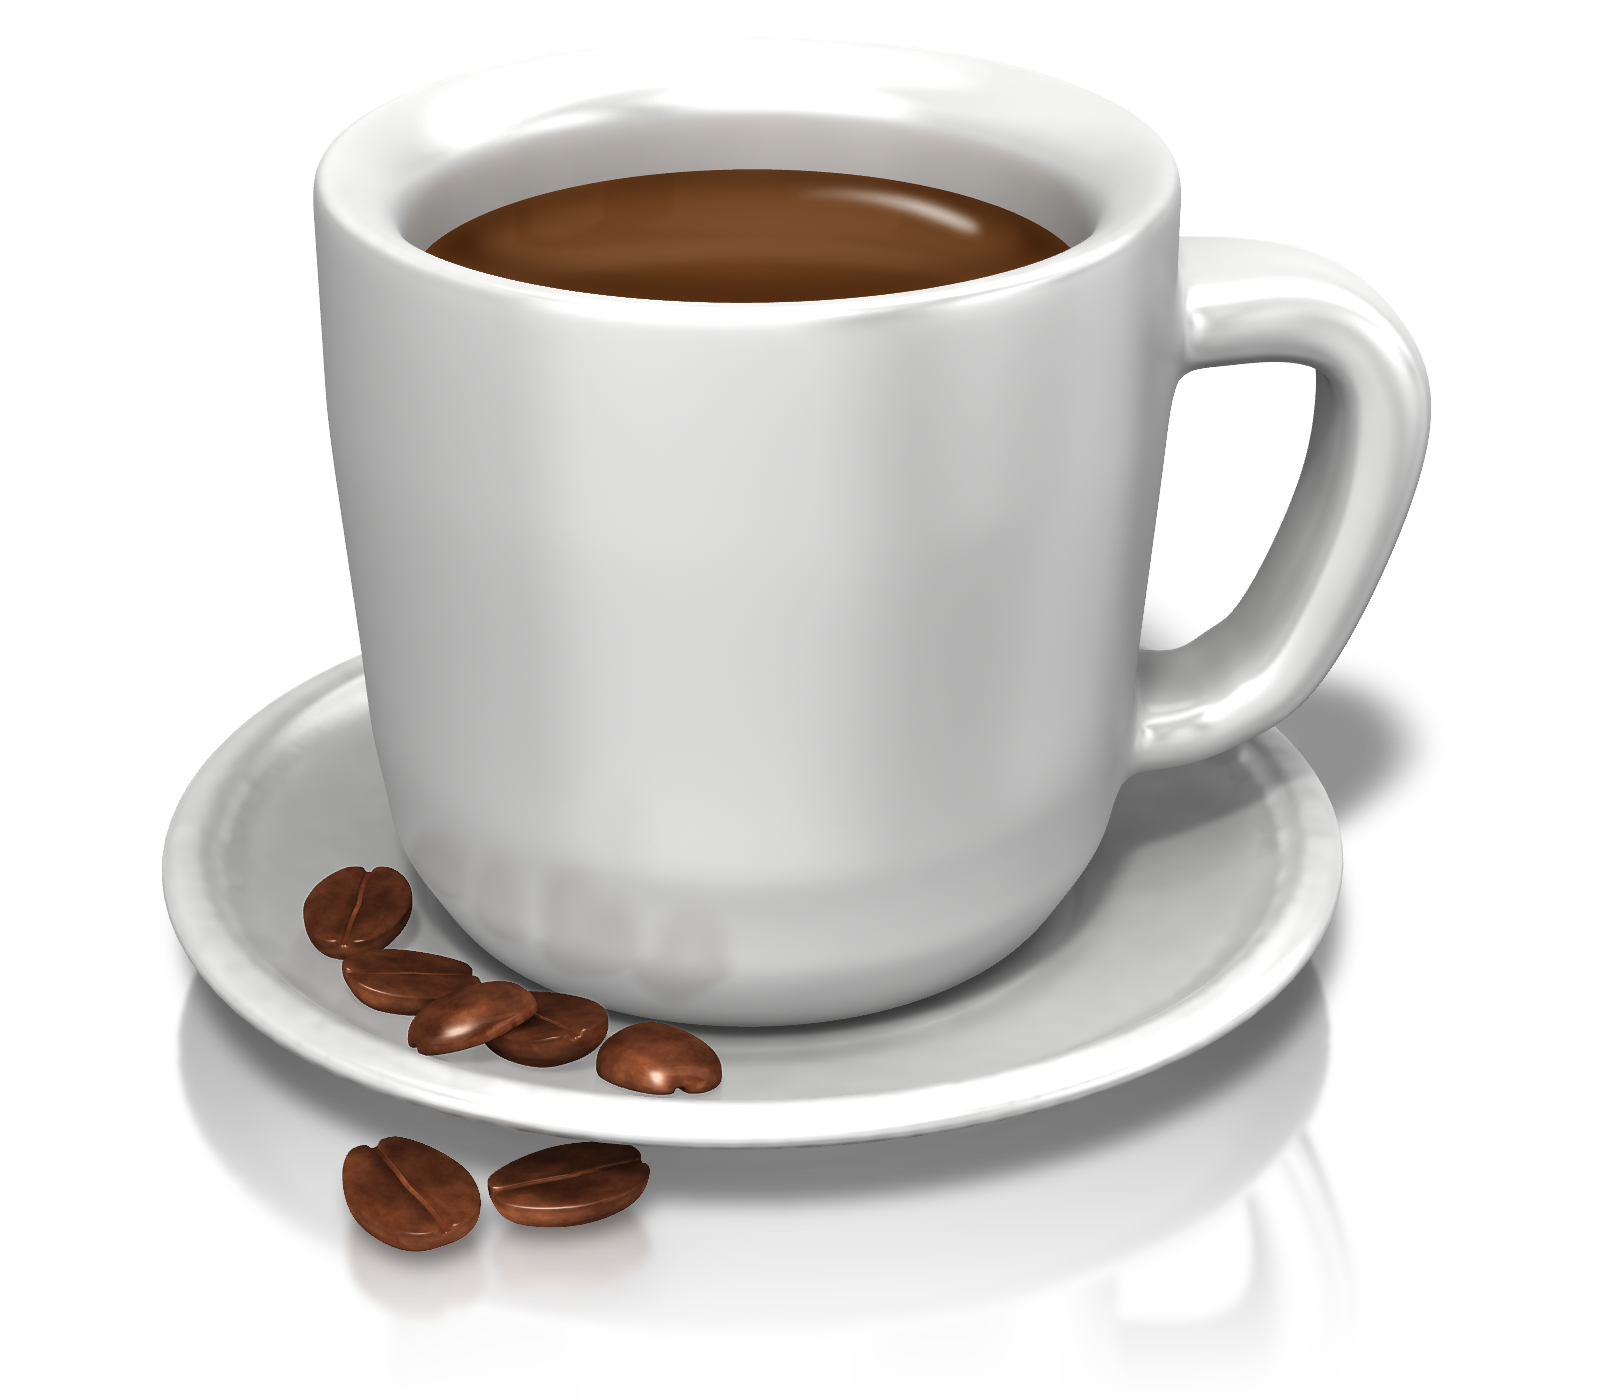 Drink from above png. Cup images free download